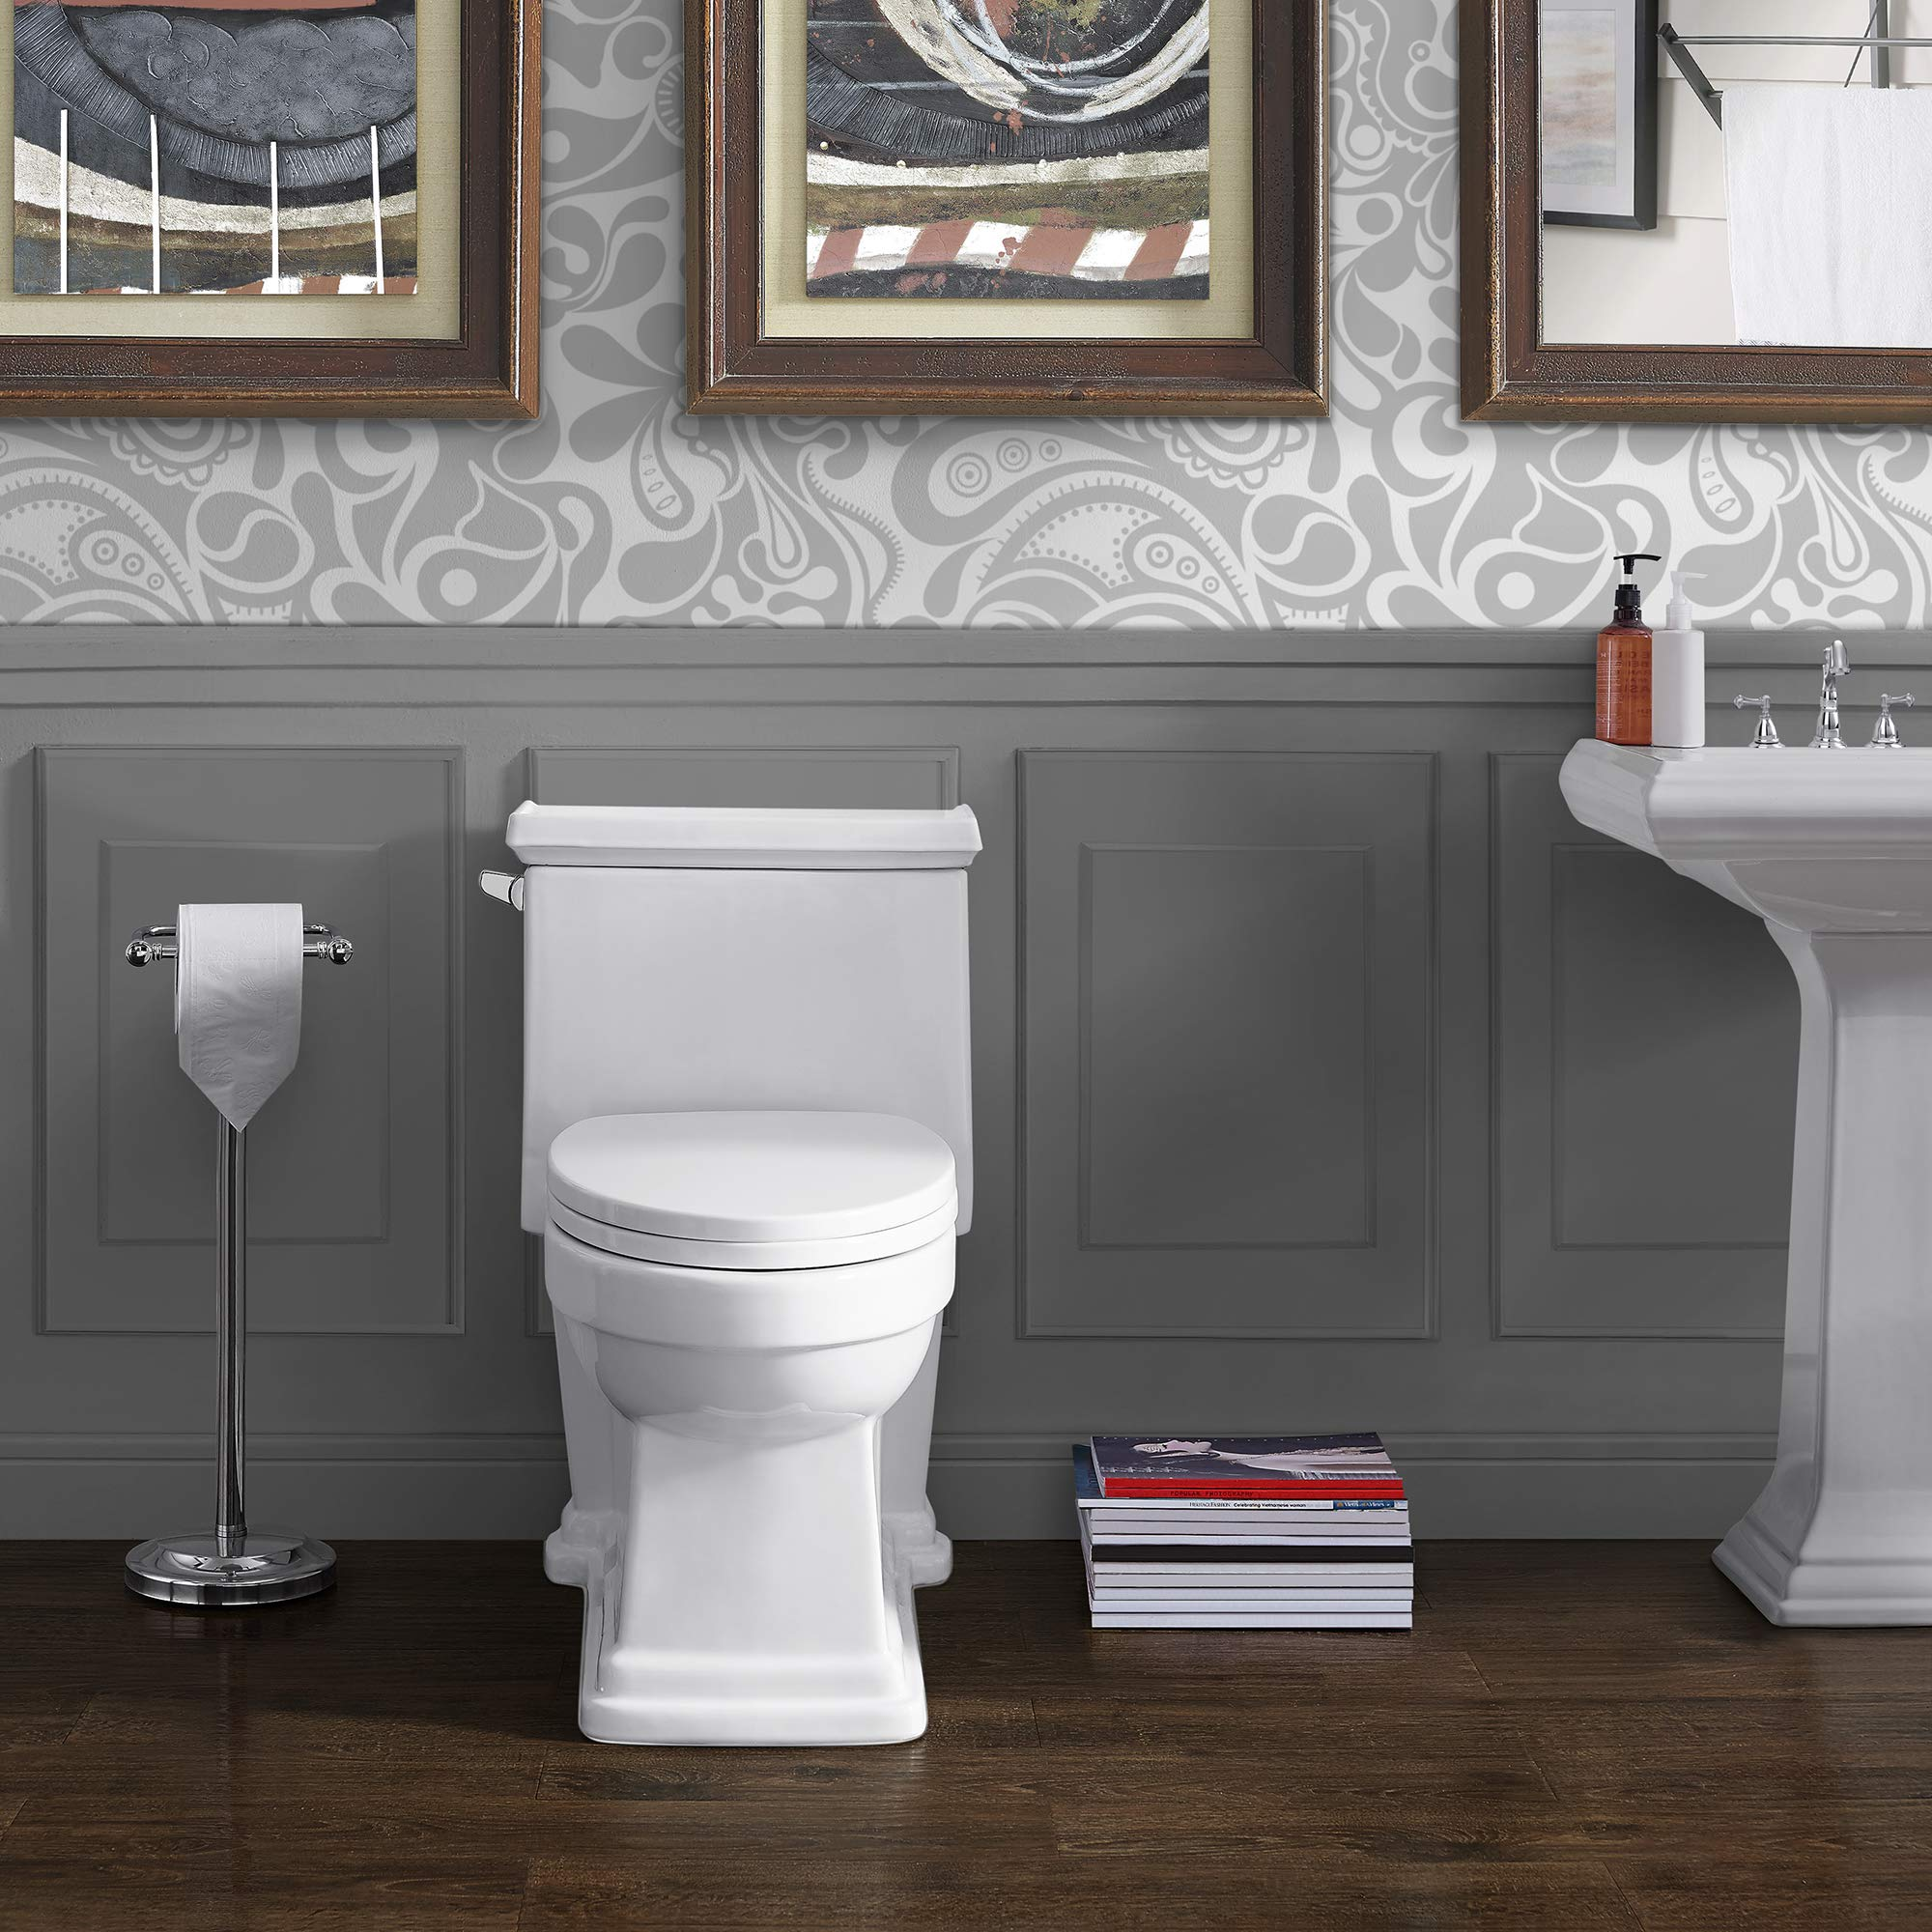 Swiss Madison SM-1T114 Voltaire One Piece Toilet, Glossy White by Swiss Madison